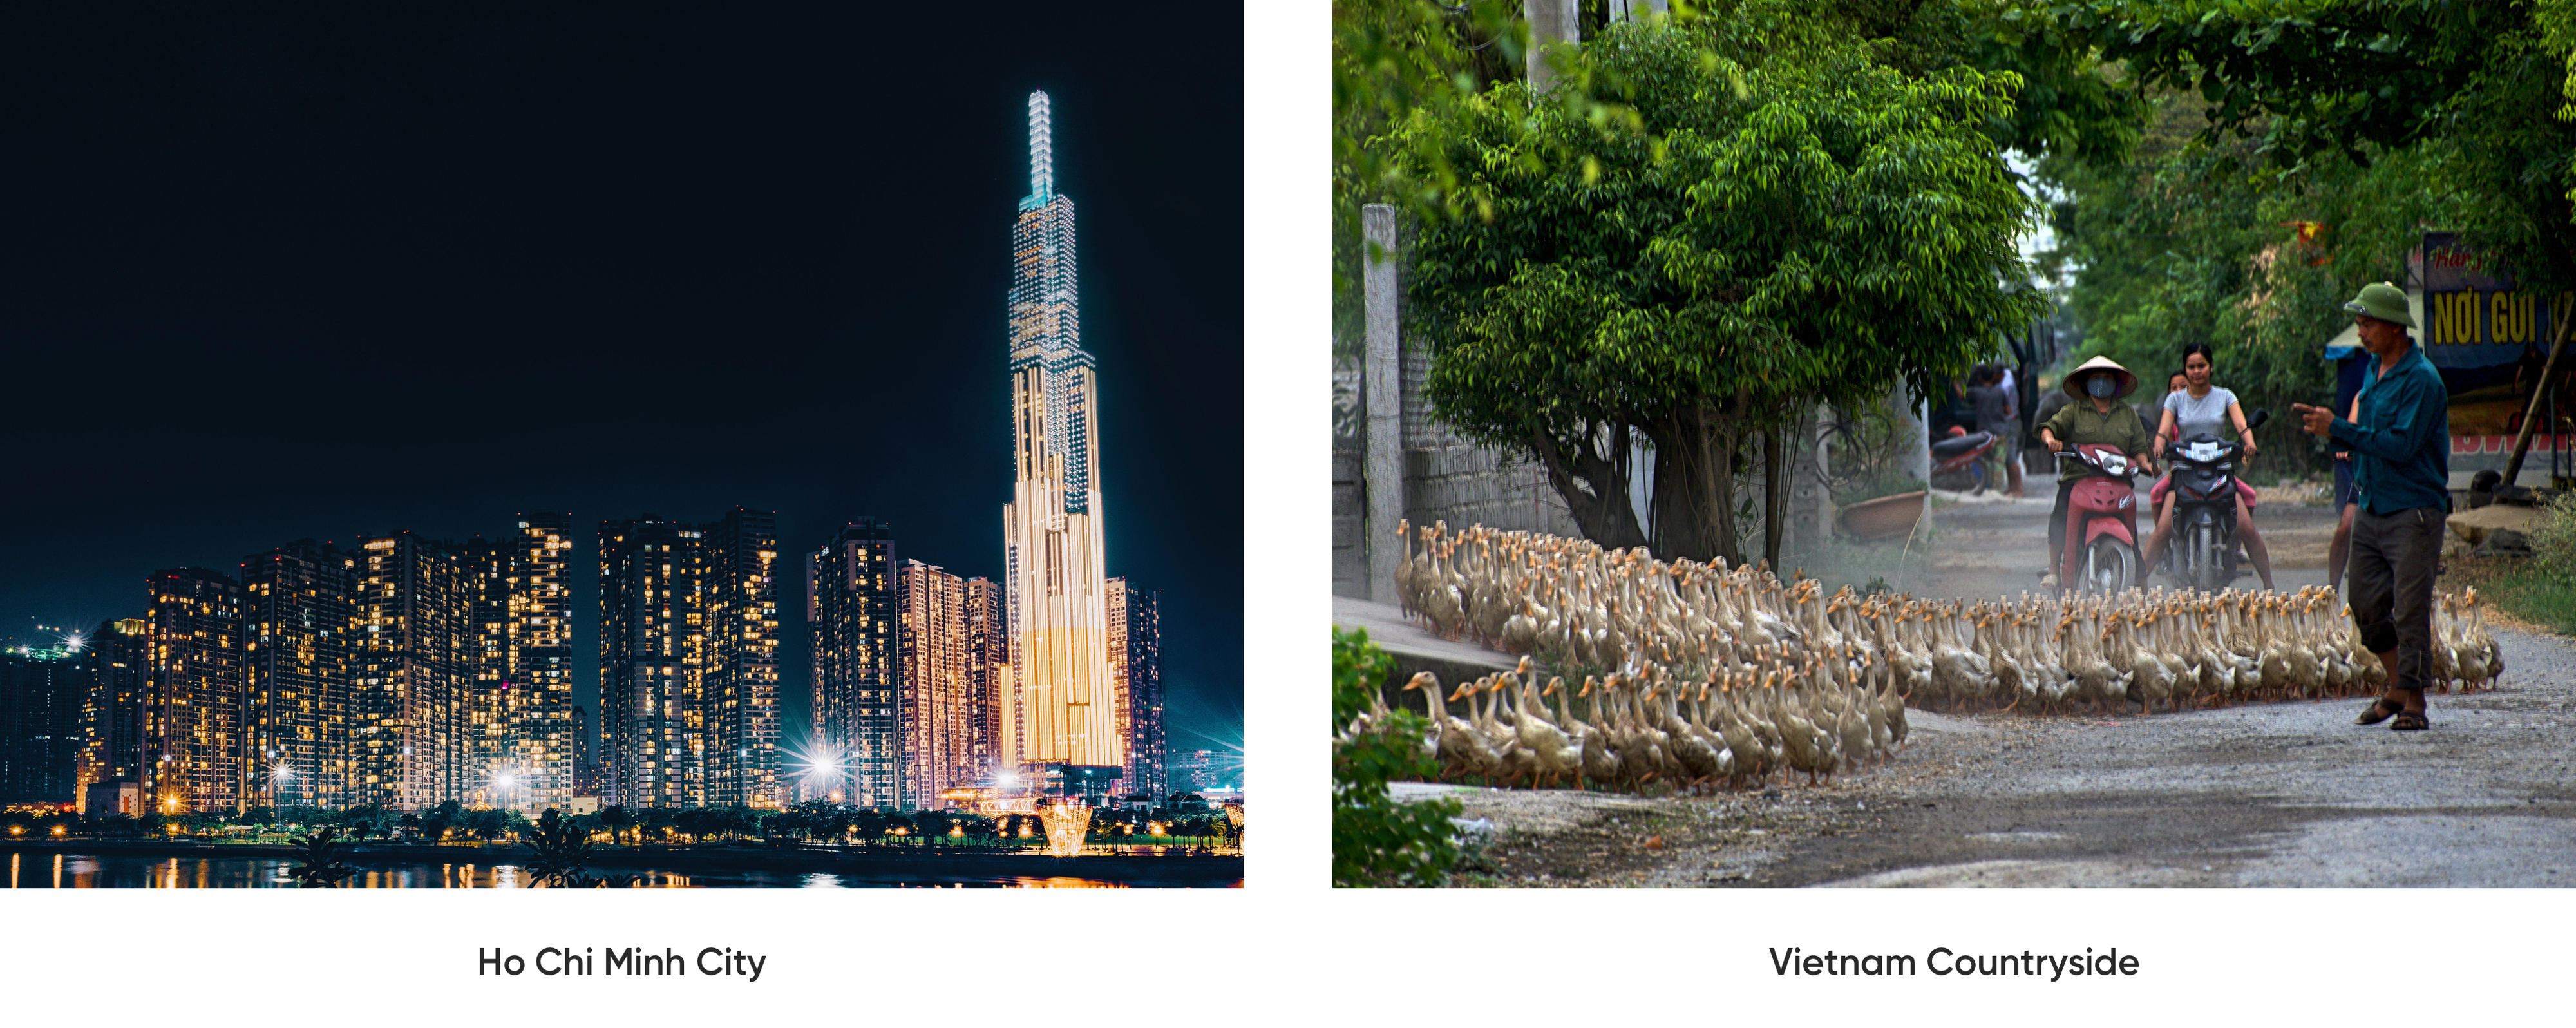 the-difference-between-big-city-and-countryside-in-vietnam